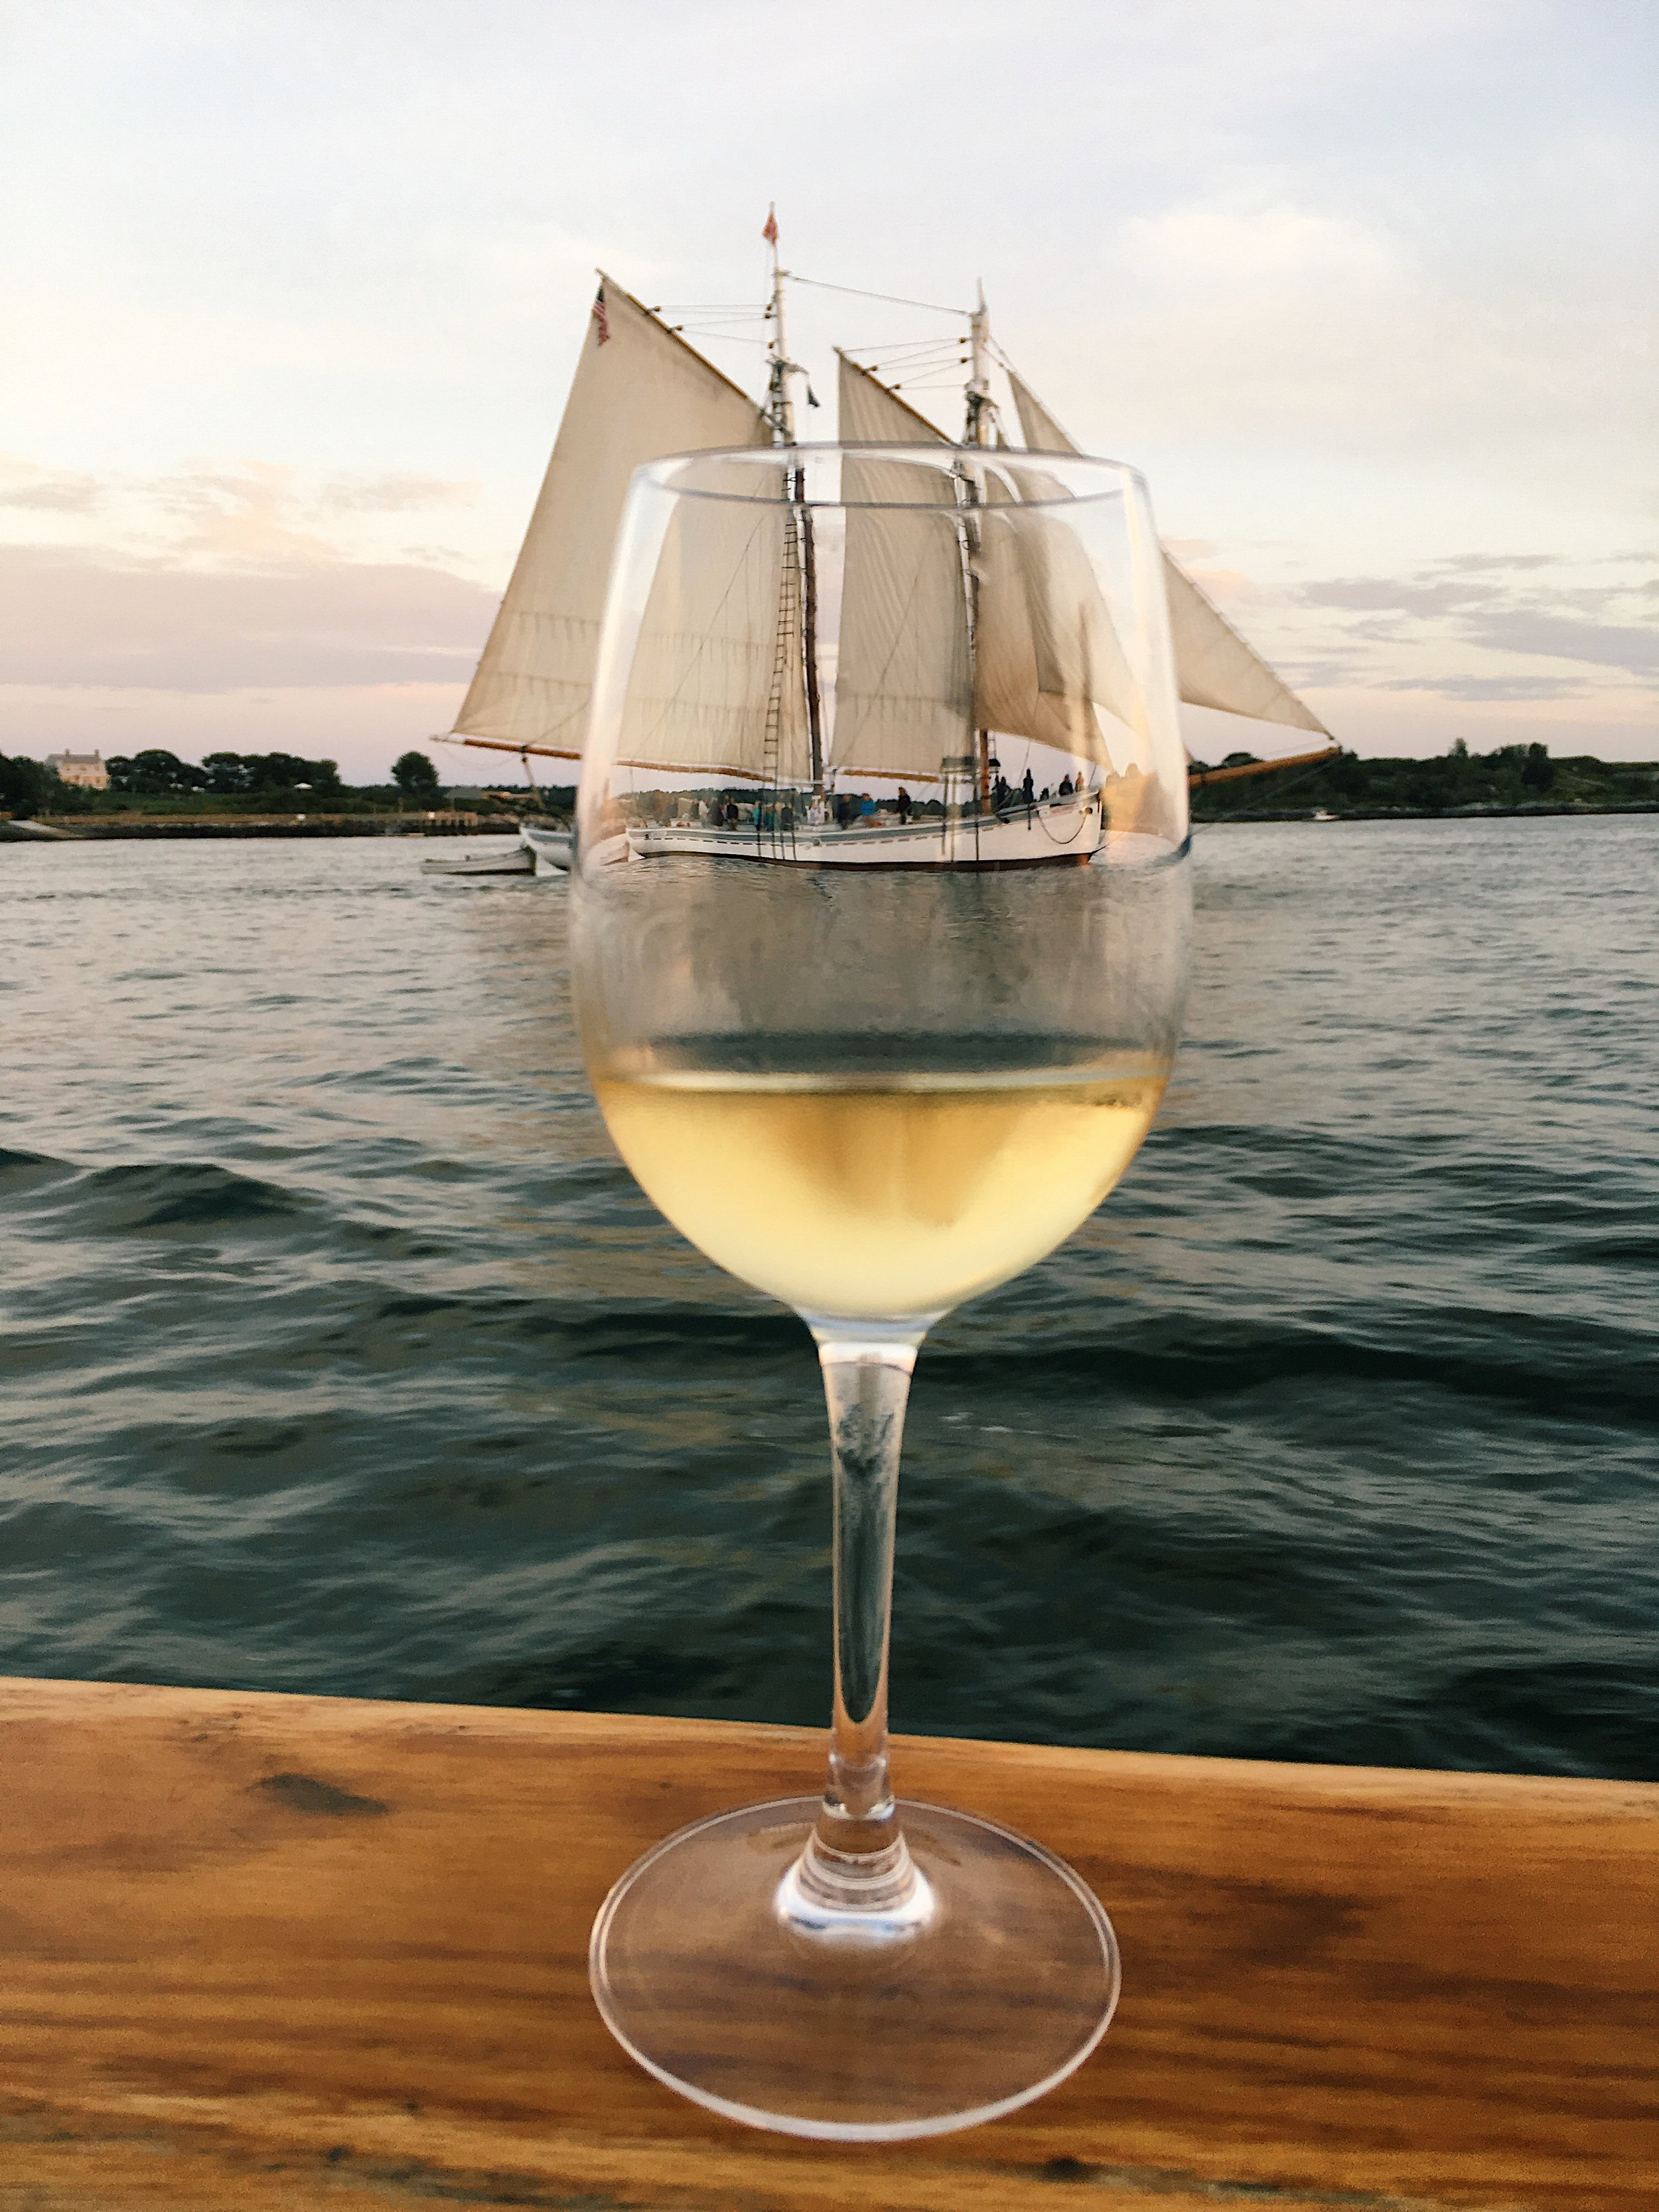 wine_wise_events_portland_maine_wine_sailwine_wise_events_portland_maine_wine_sailwine-wine-portland-maine-sail-white.jpg